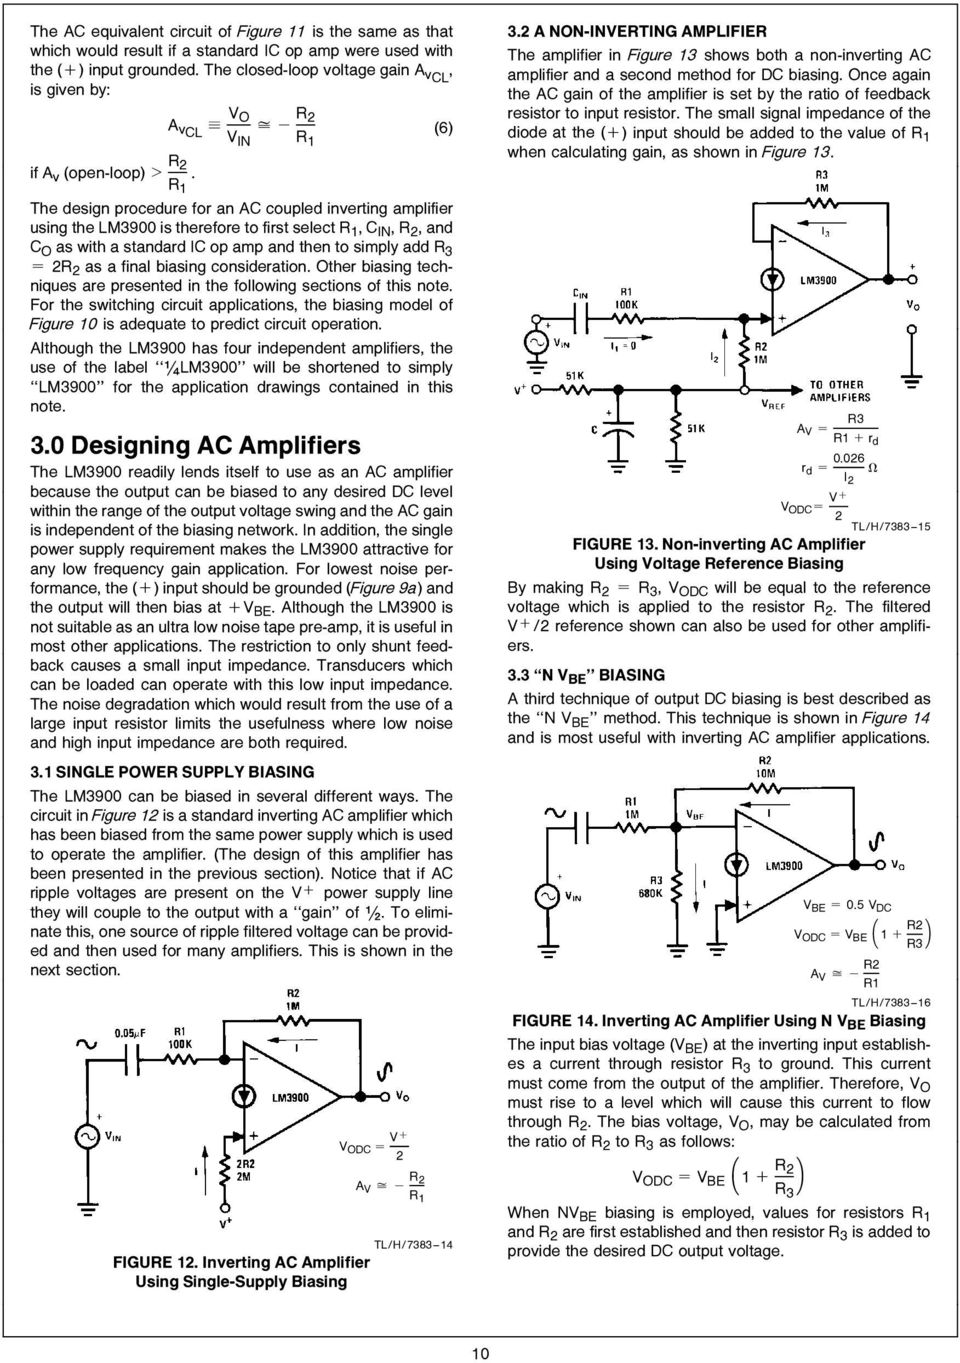 Lm3900 An 72 The A New Current Differencing Quad Of Plus Or Basic Op Amp Operation Using Feedback Principles And Then To Simply Add R 3 E 2r 2 As Final Biasing